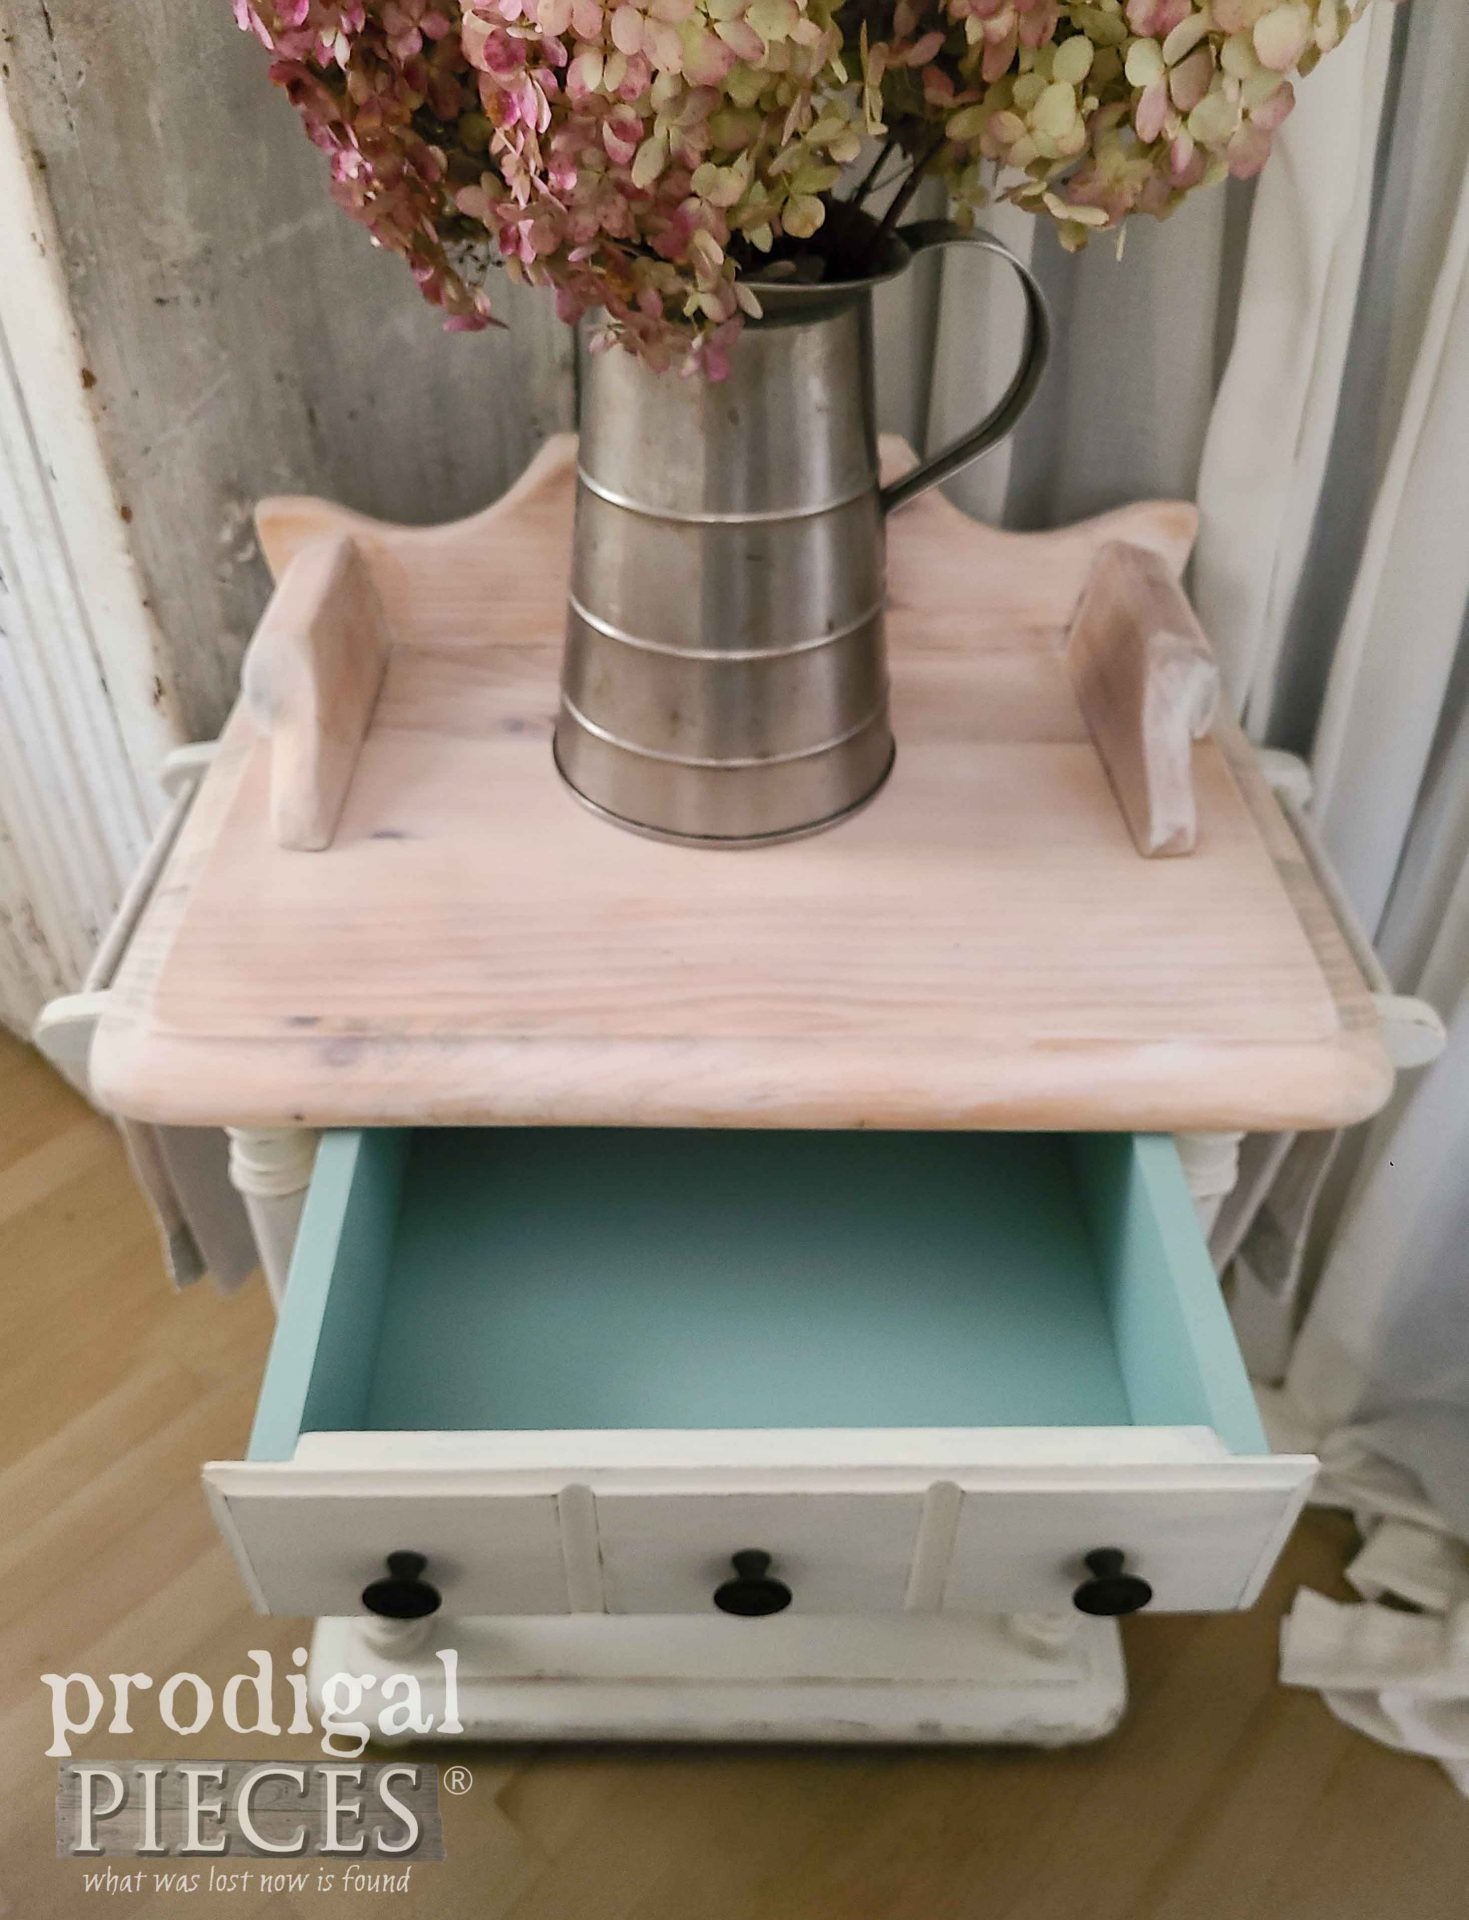 Open Vintage Wash Stand Drawer in Blue by Larissa of Prodigal Pieces | prodigalpieces.com #prodigalpieces #vintage #farmhouse #furniture